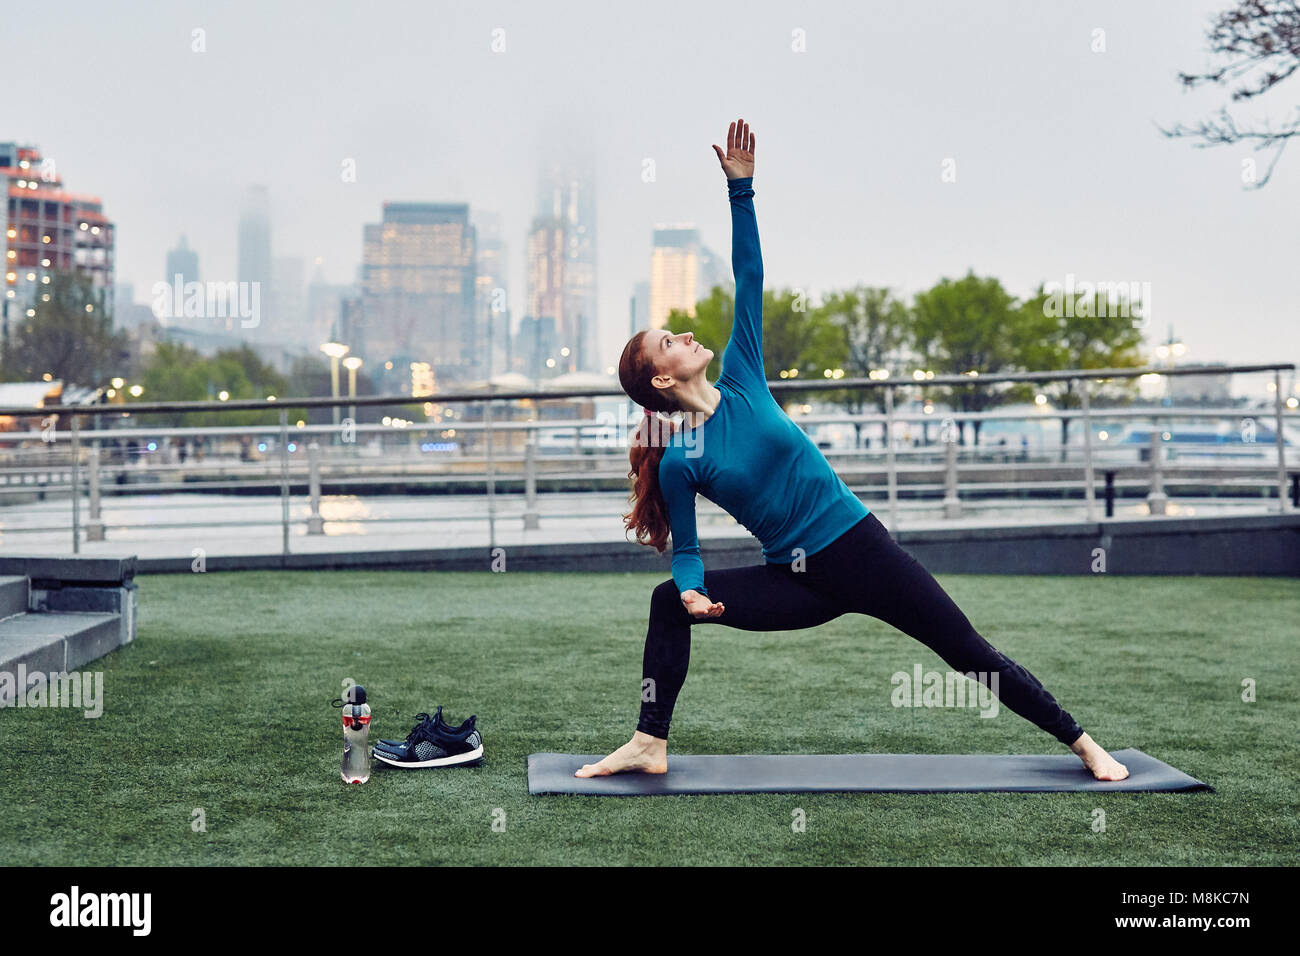 Caucasian Woman Performs Yoga in a Public New York City Park - Stock Image